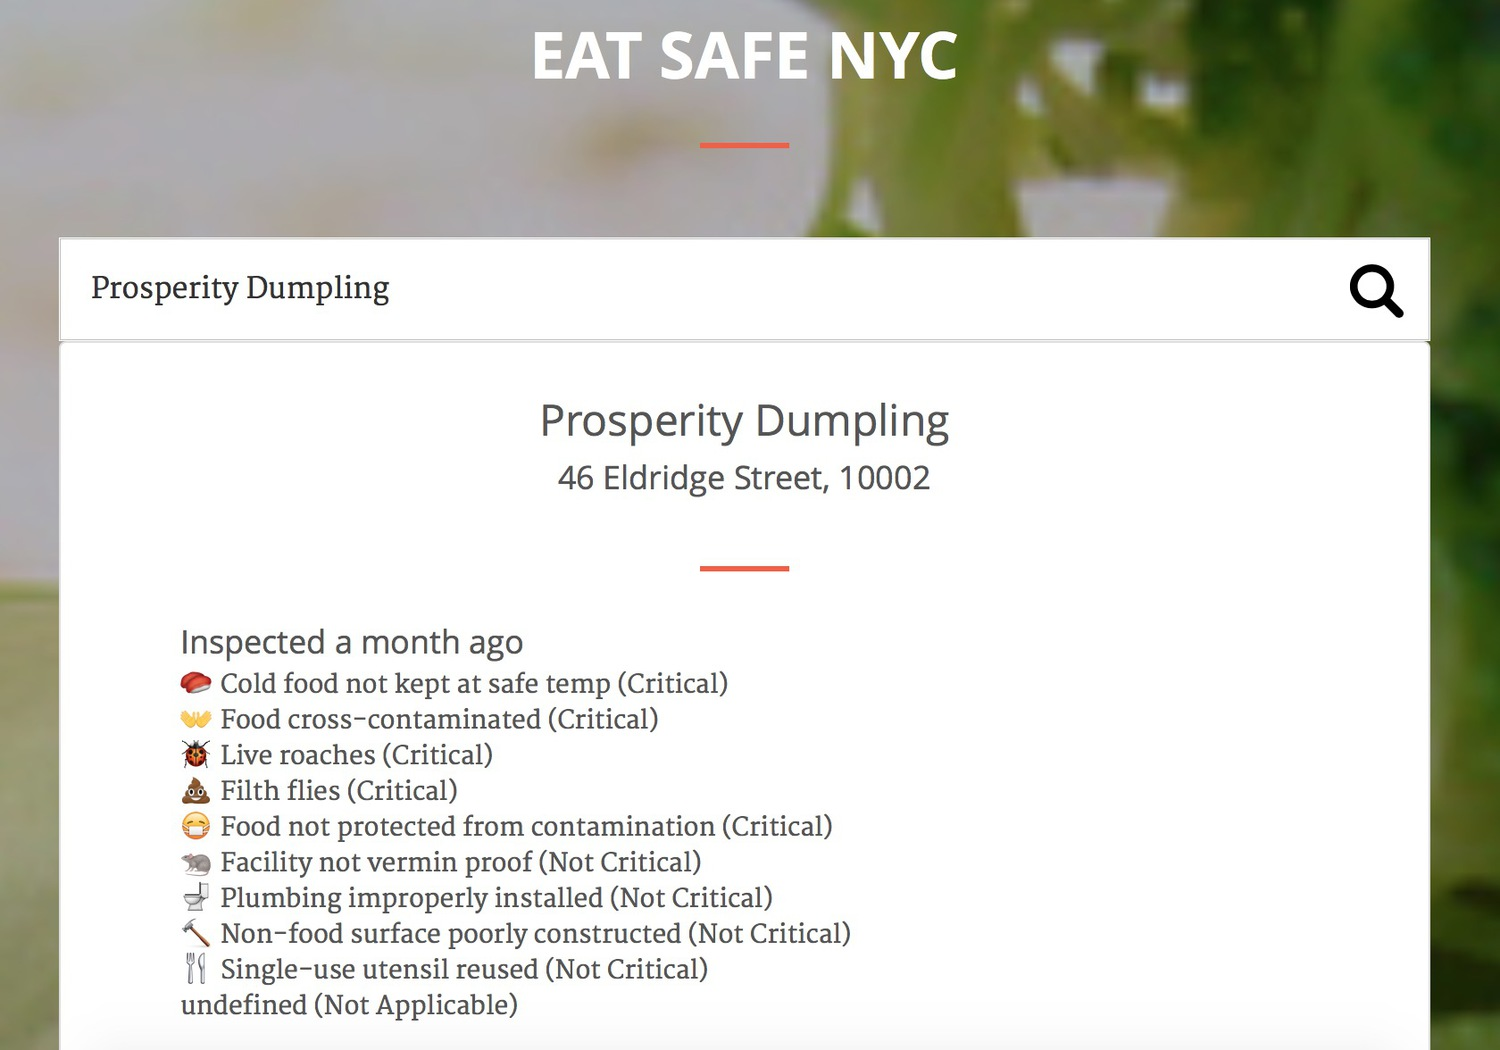 Prosperity Dumpling on Eat Safe NYC